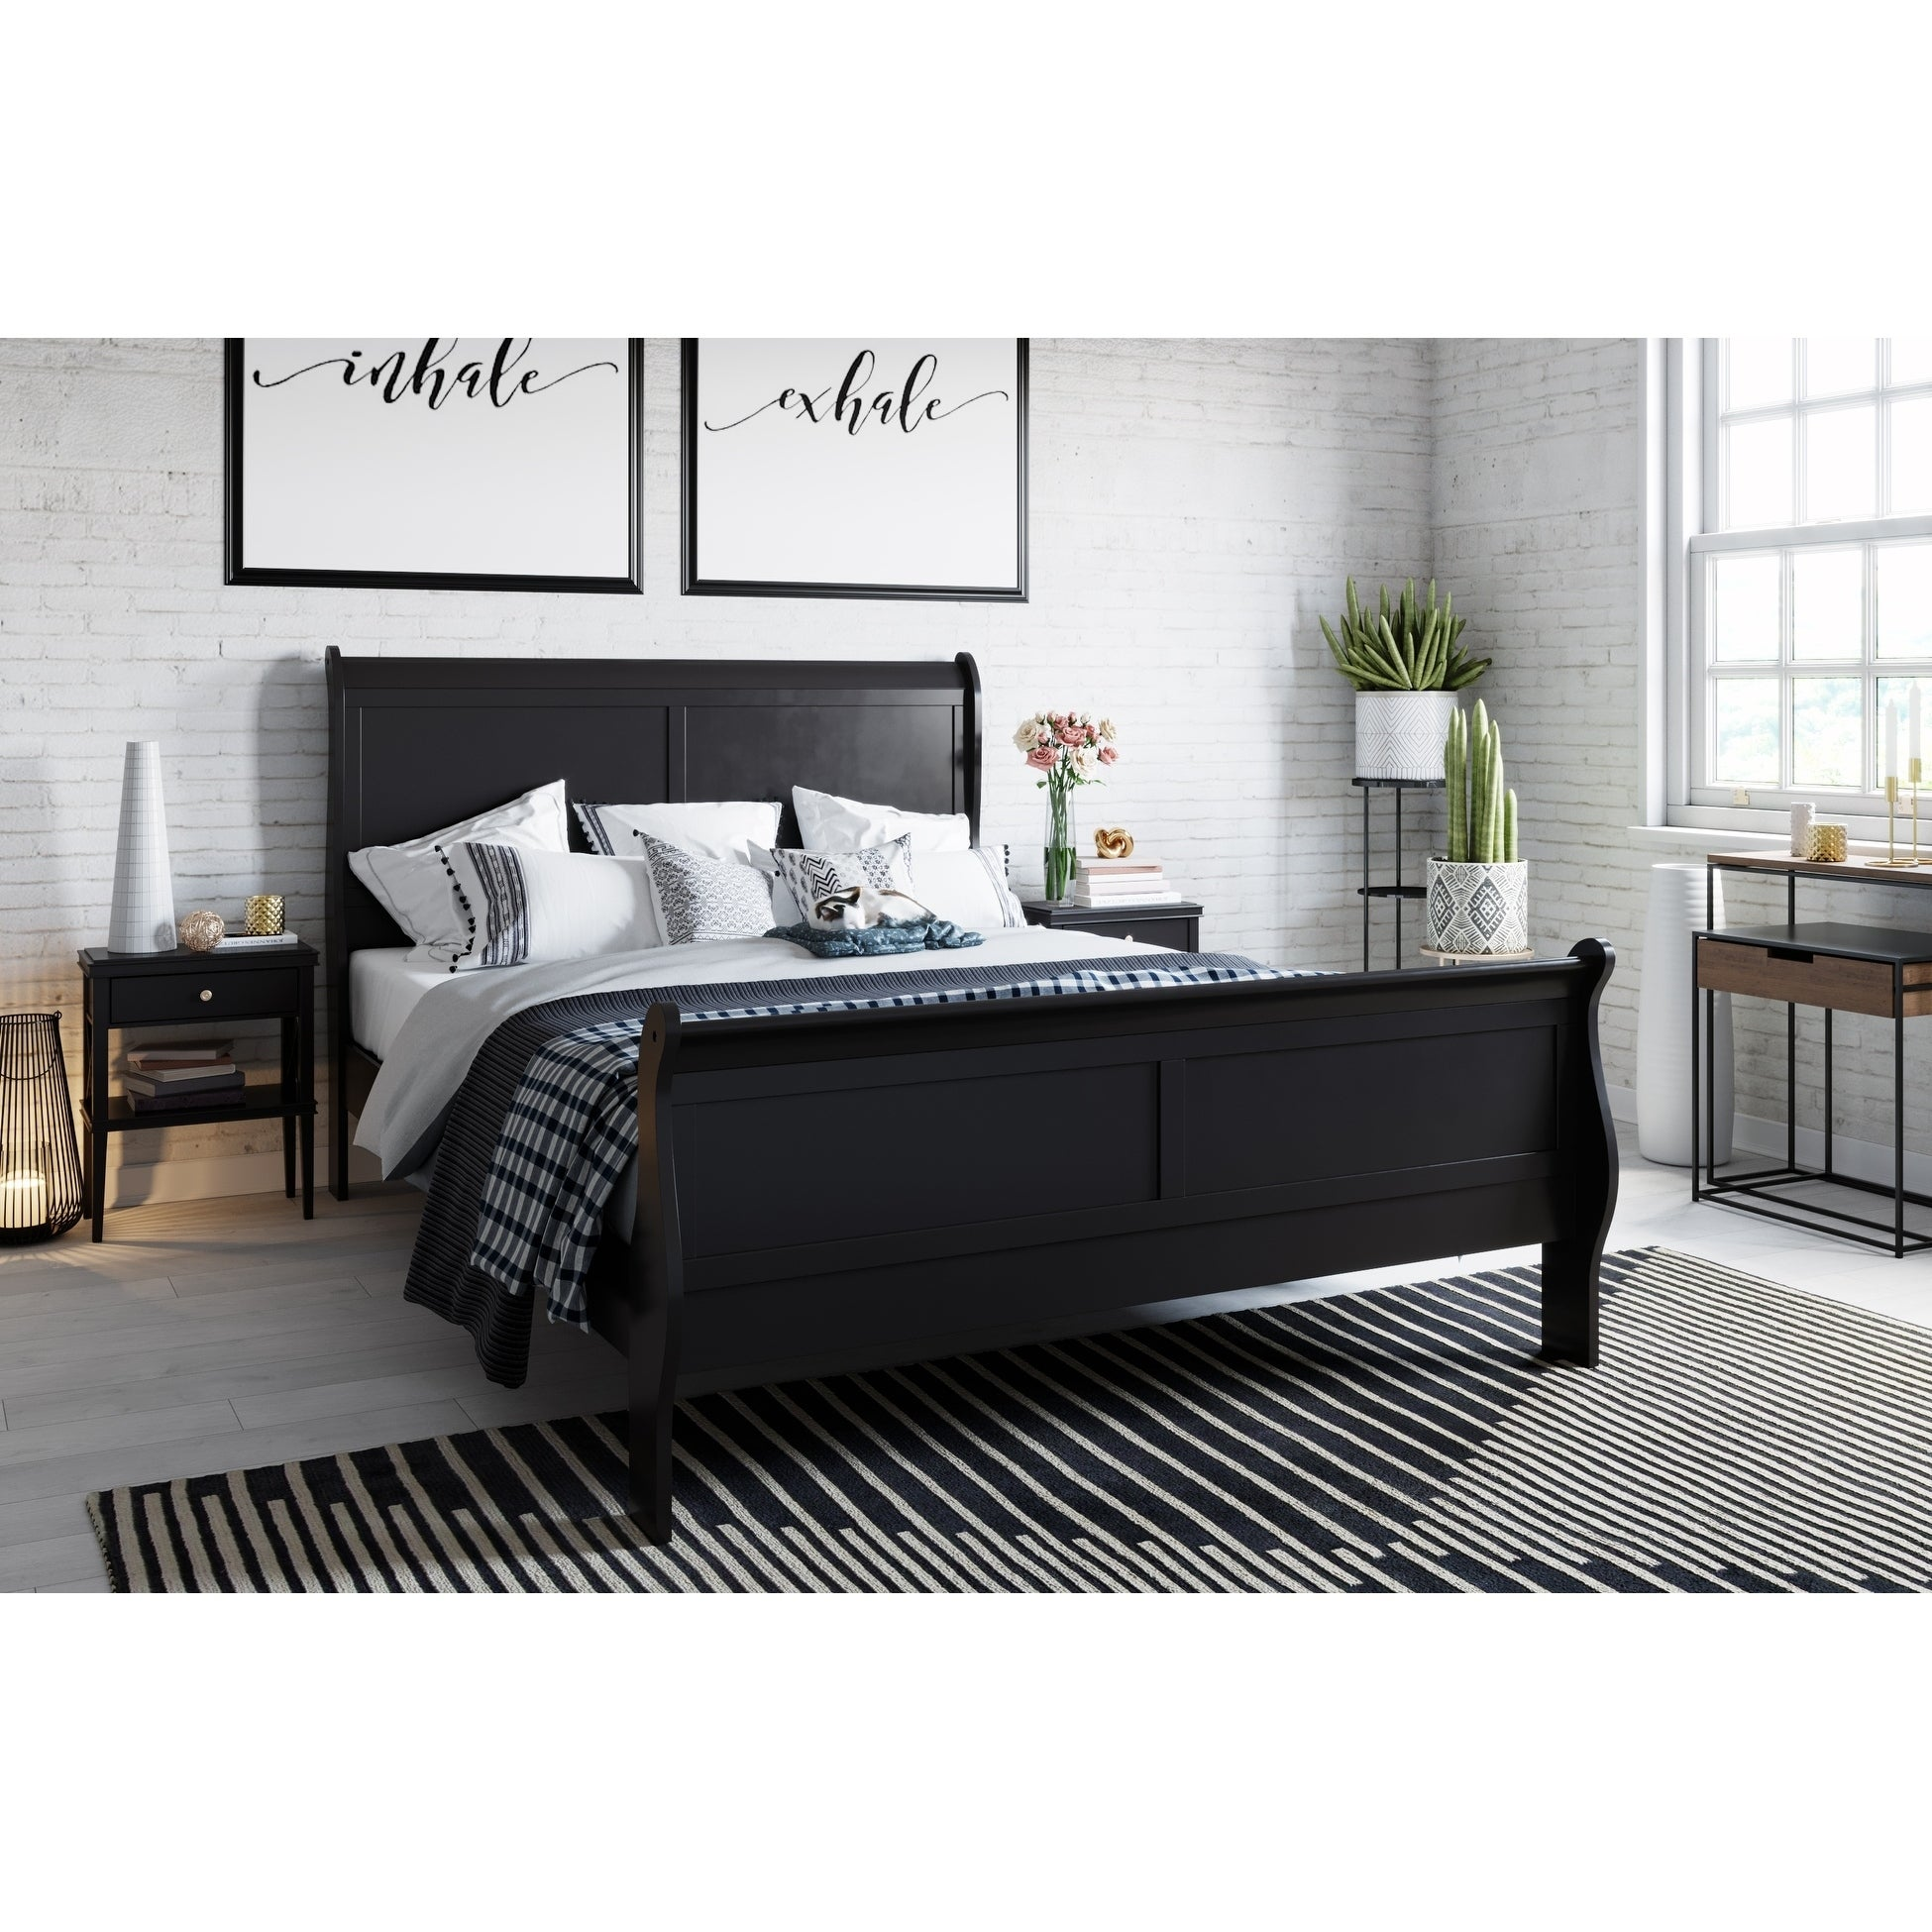 Shop Black Friday Deals On Copper Grove Samokov Contemporary Wood Bed Overstock 27420661